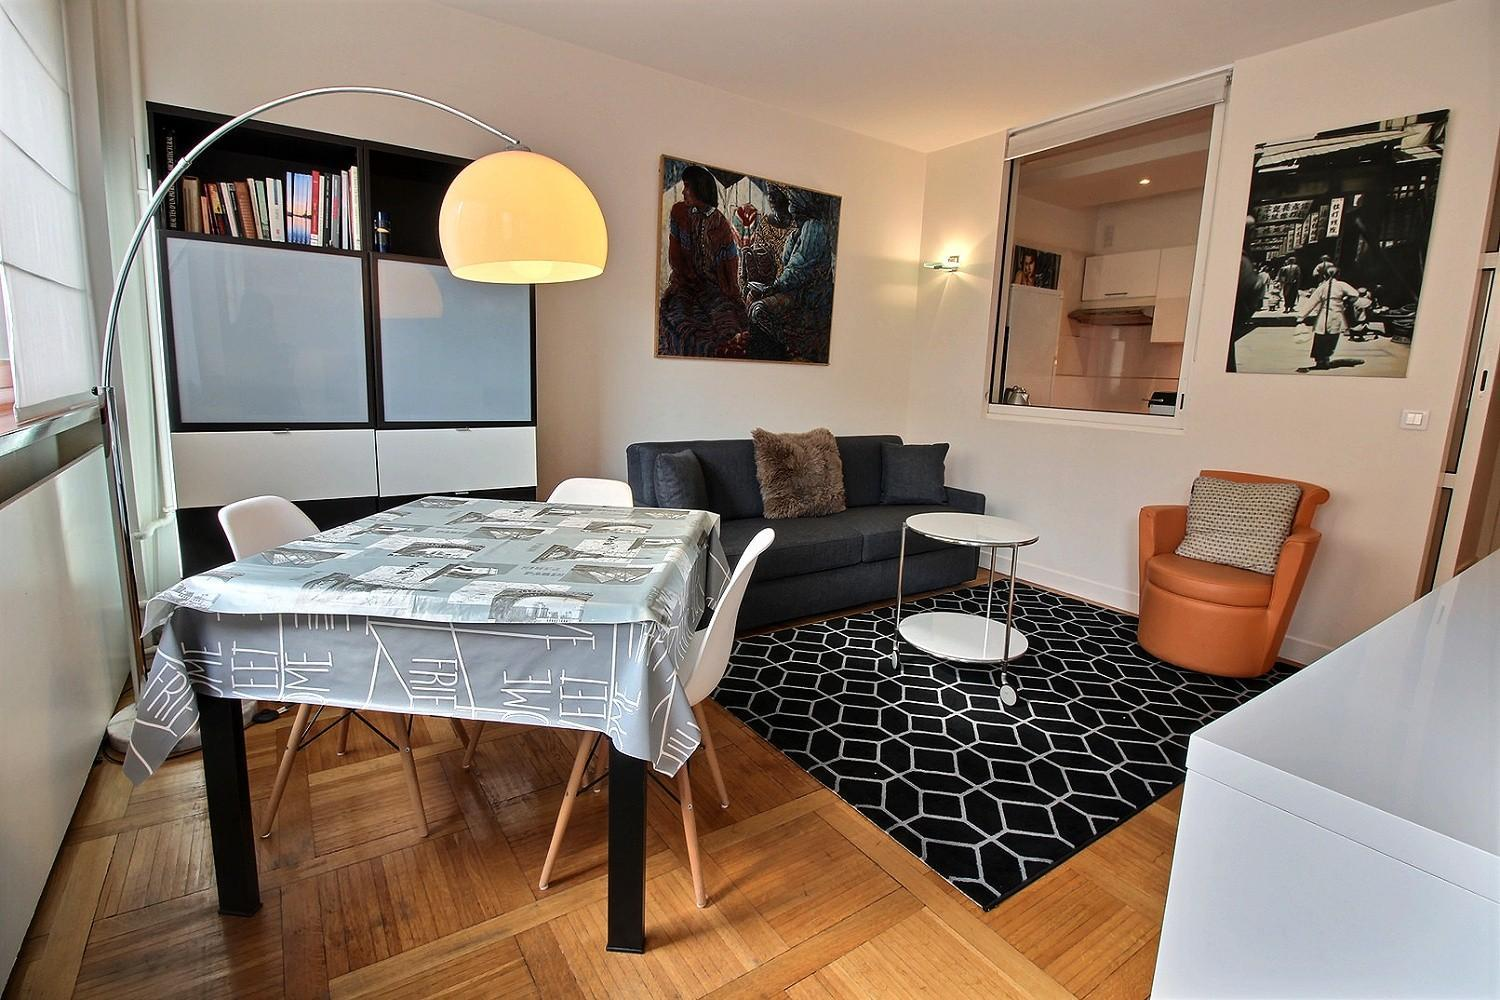 102296 - Modular apartment for 5 people between Opéra and Bourse